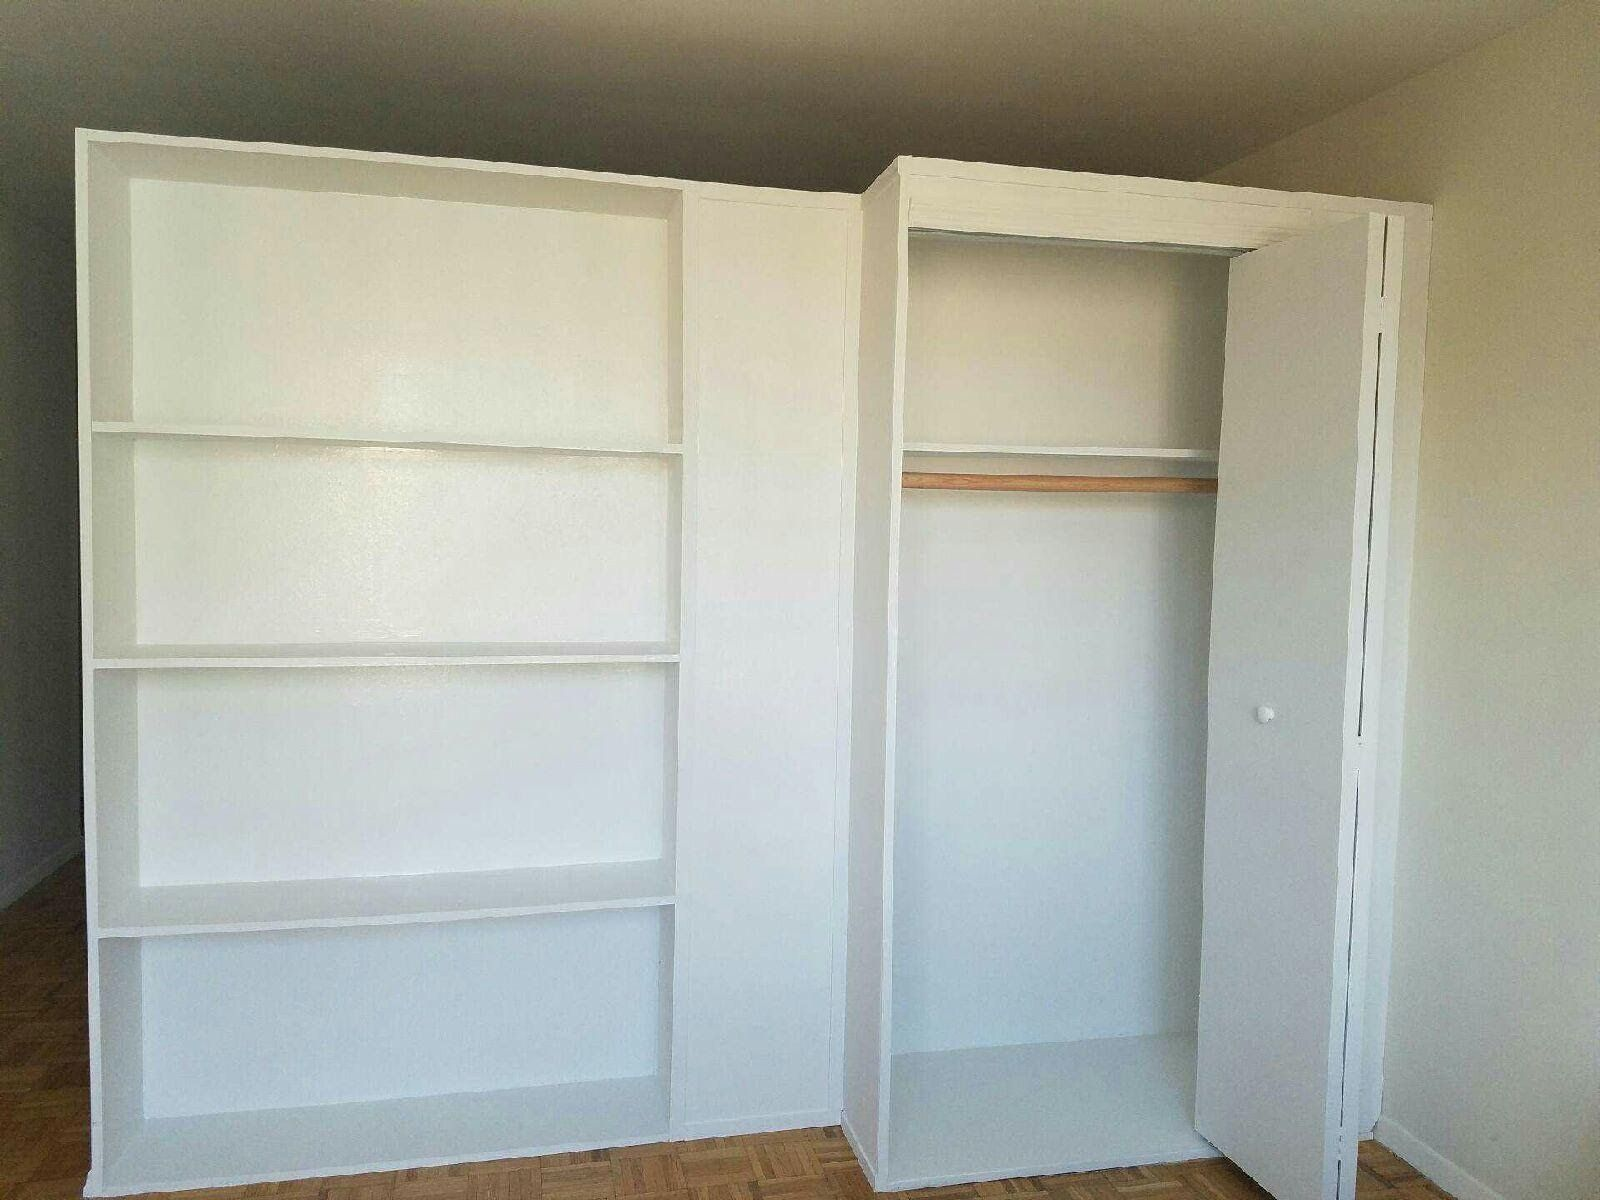 white divider ikea a engrossing bookcase bins wall room size for dividers in half of home prepossessing decoration ideas bookshelf walmart door full and with decor bookshelves as living oak wonderful furniture